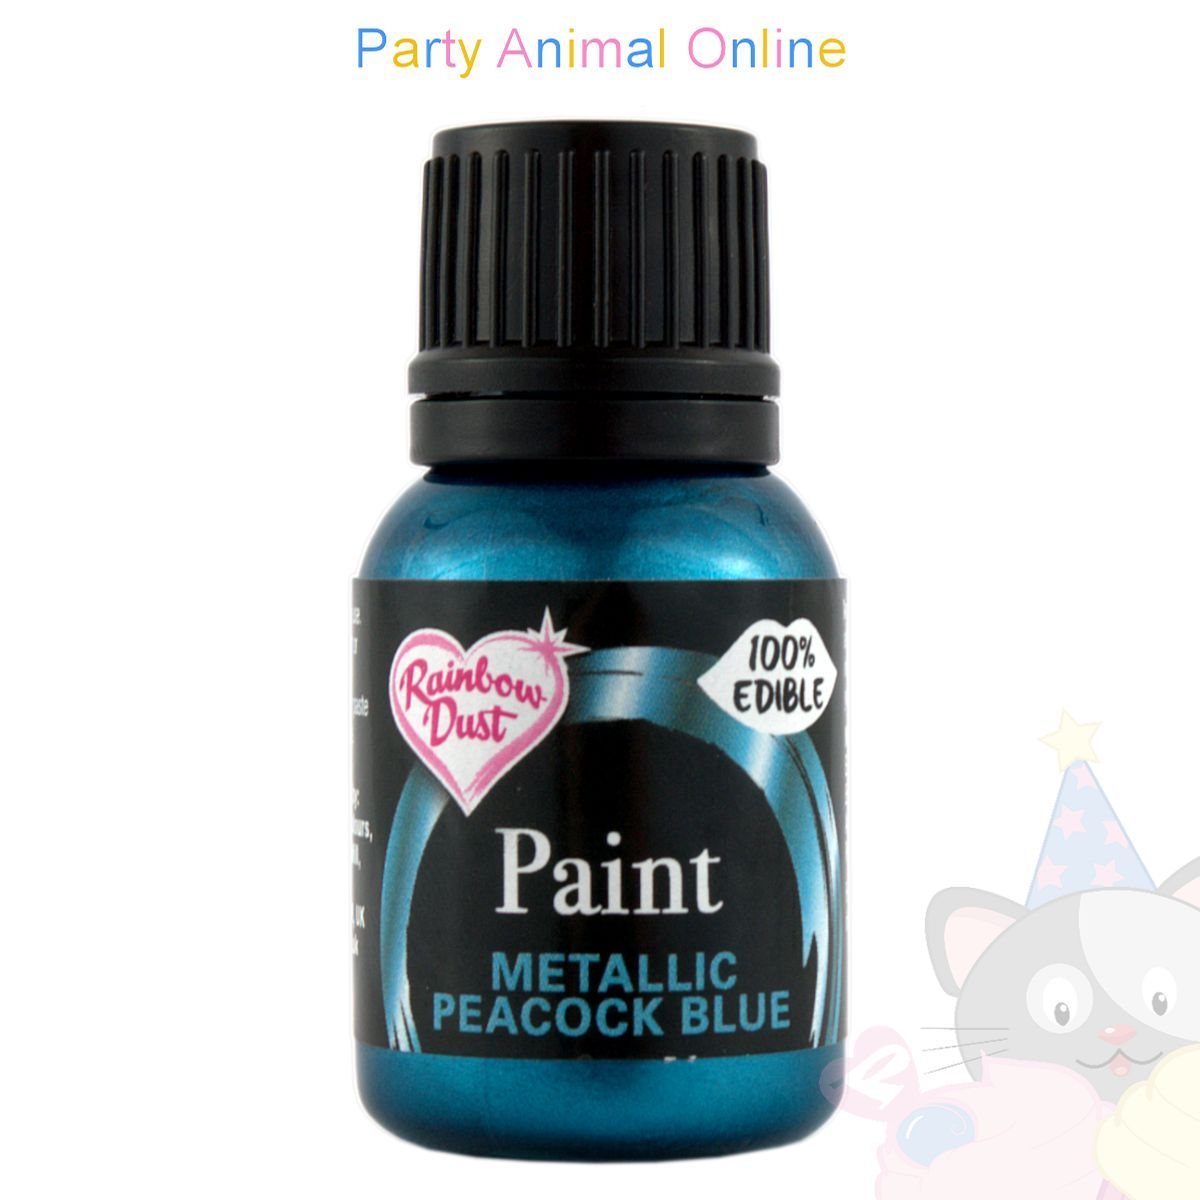 Rainbow Dust Edible Food Paint - METALLIC PEACOCK BLUE